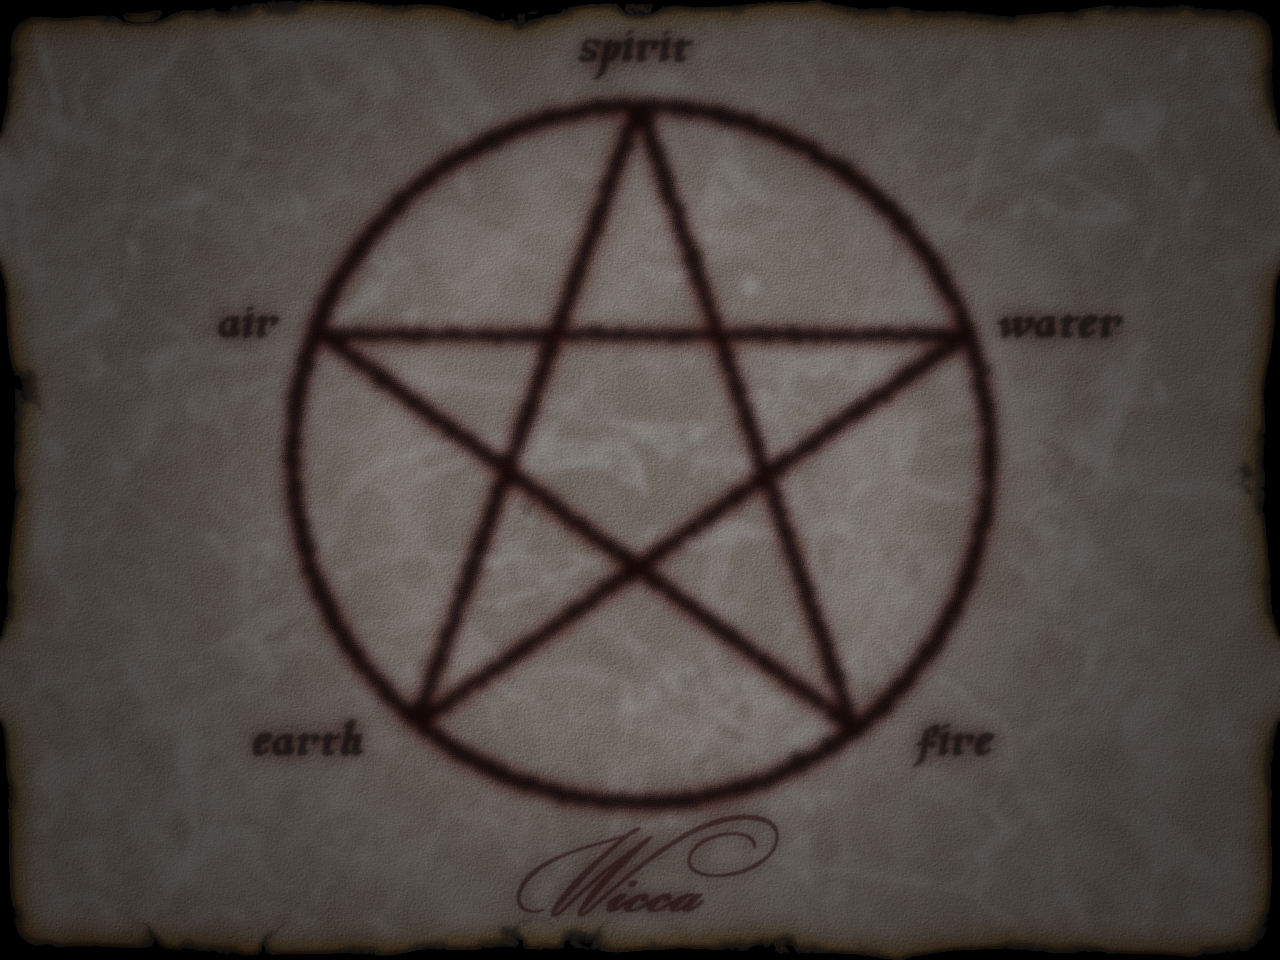 Witchcraft Wallpaper Release Date Price and Specs 1280x960